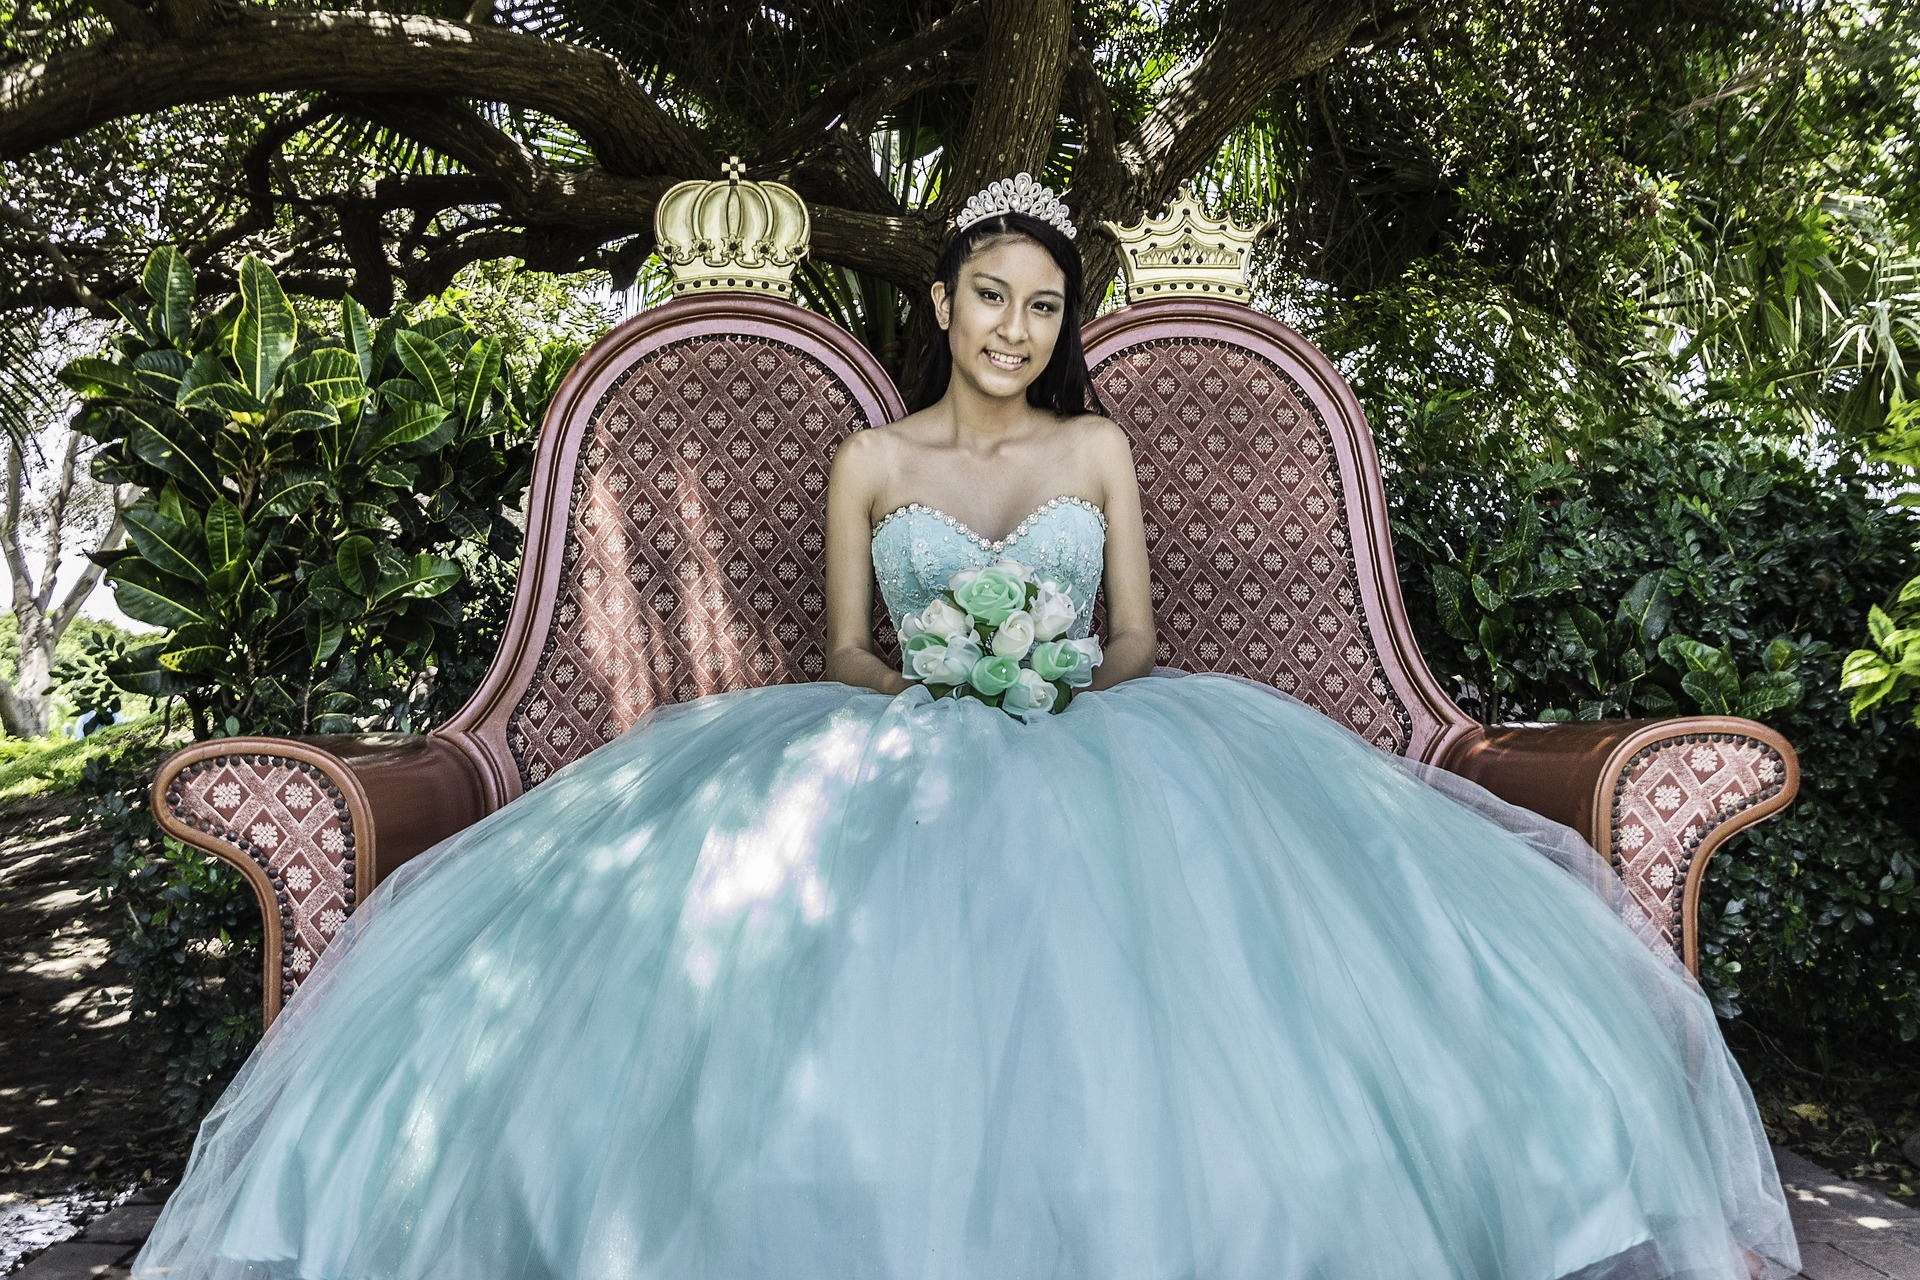 Planning the perfect quinceanera takes time, organization, and patience.